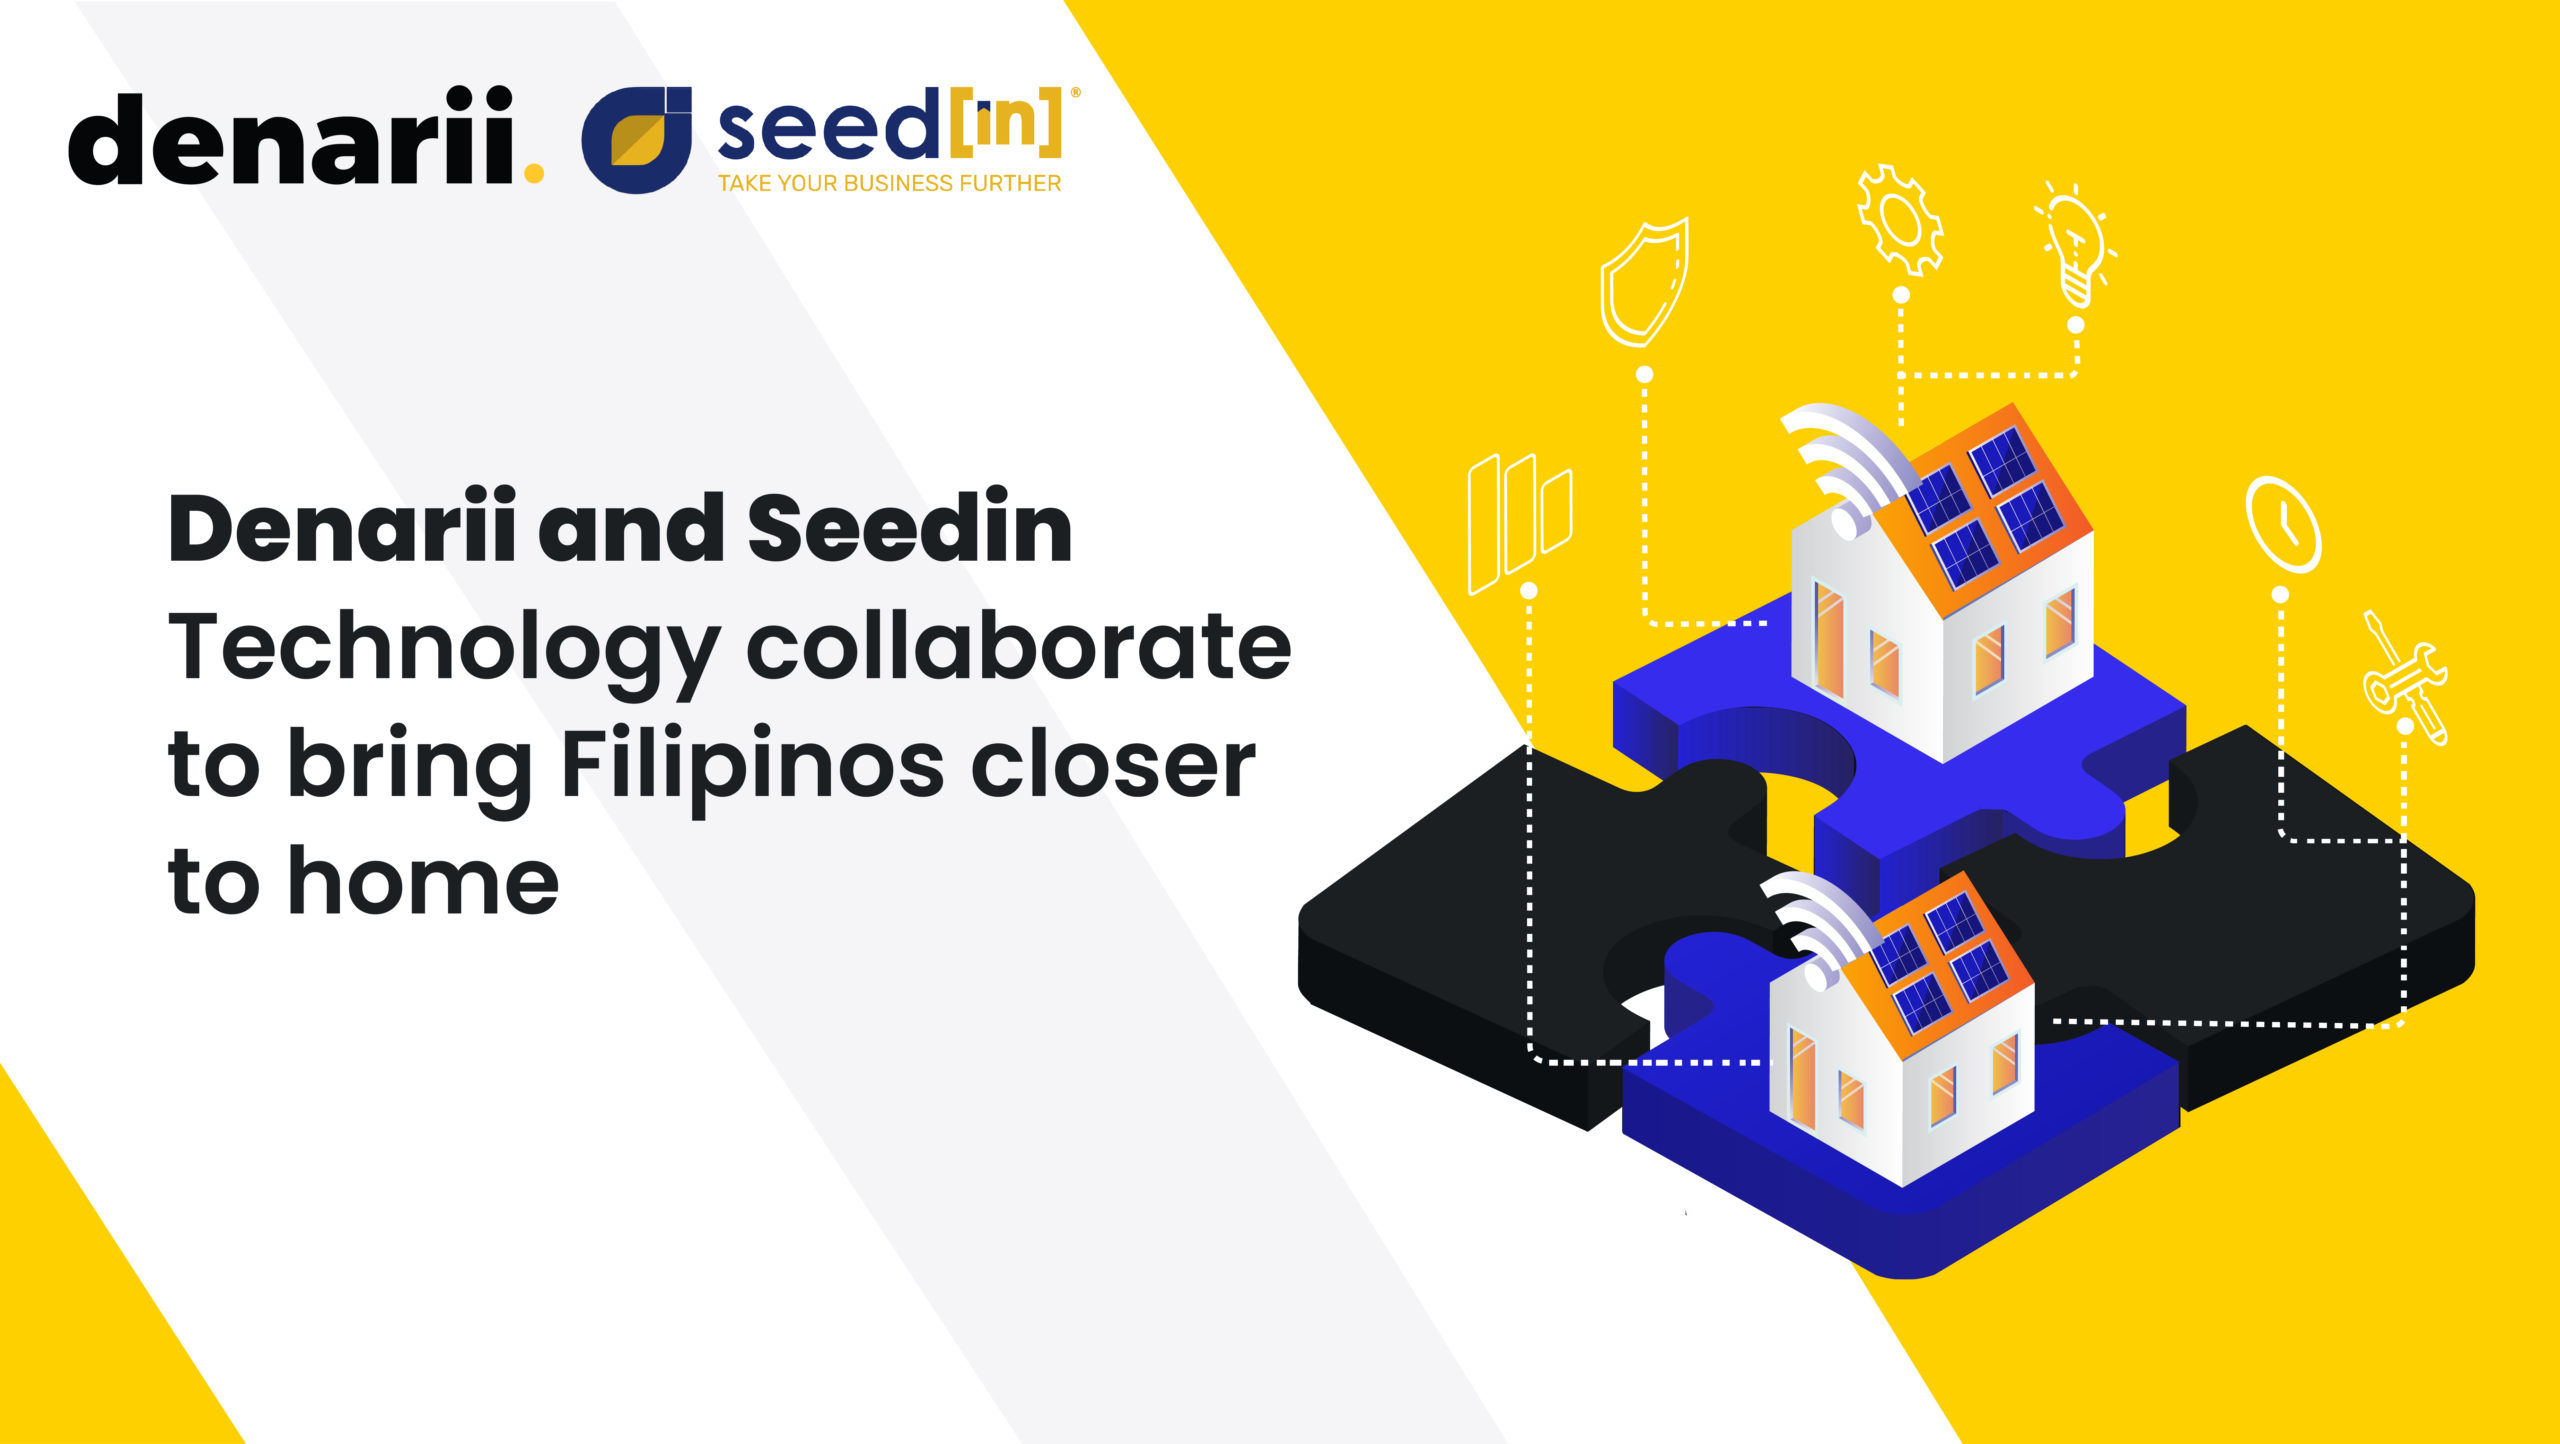 Denarii and Seedin Technology collaborate to bring Filipinos closer to home